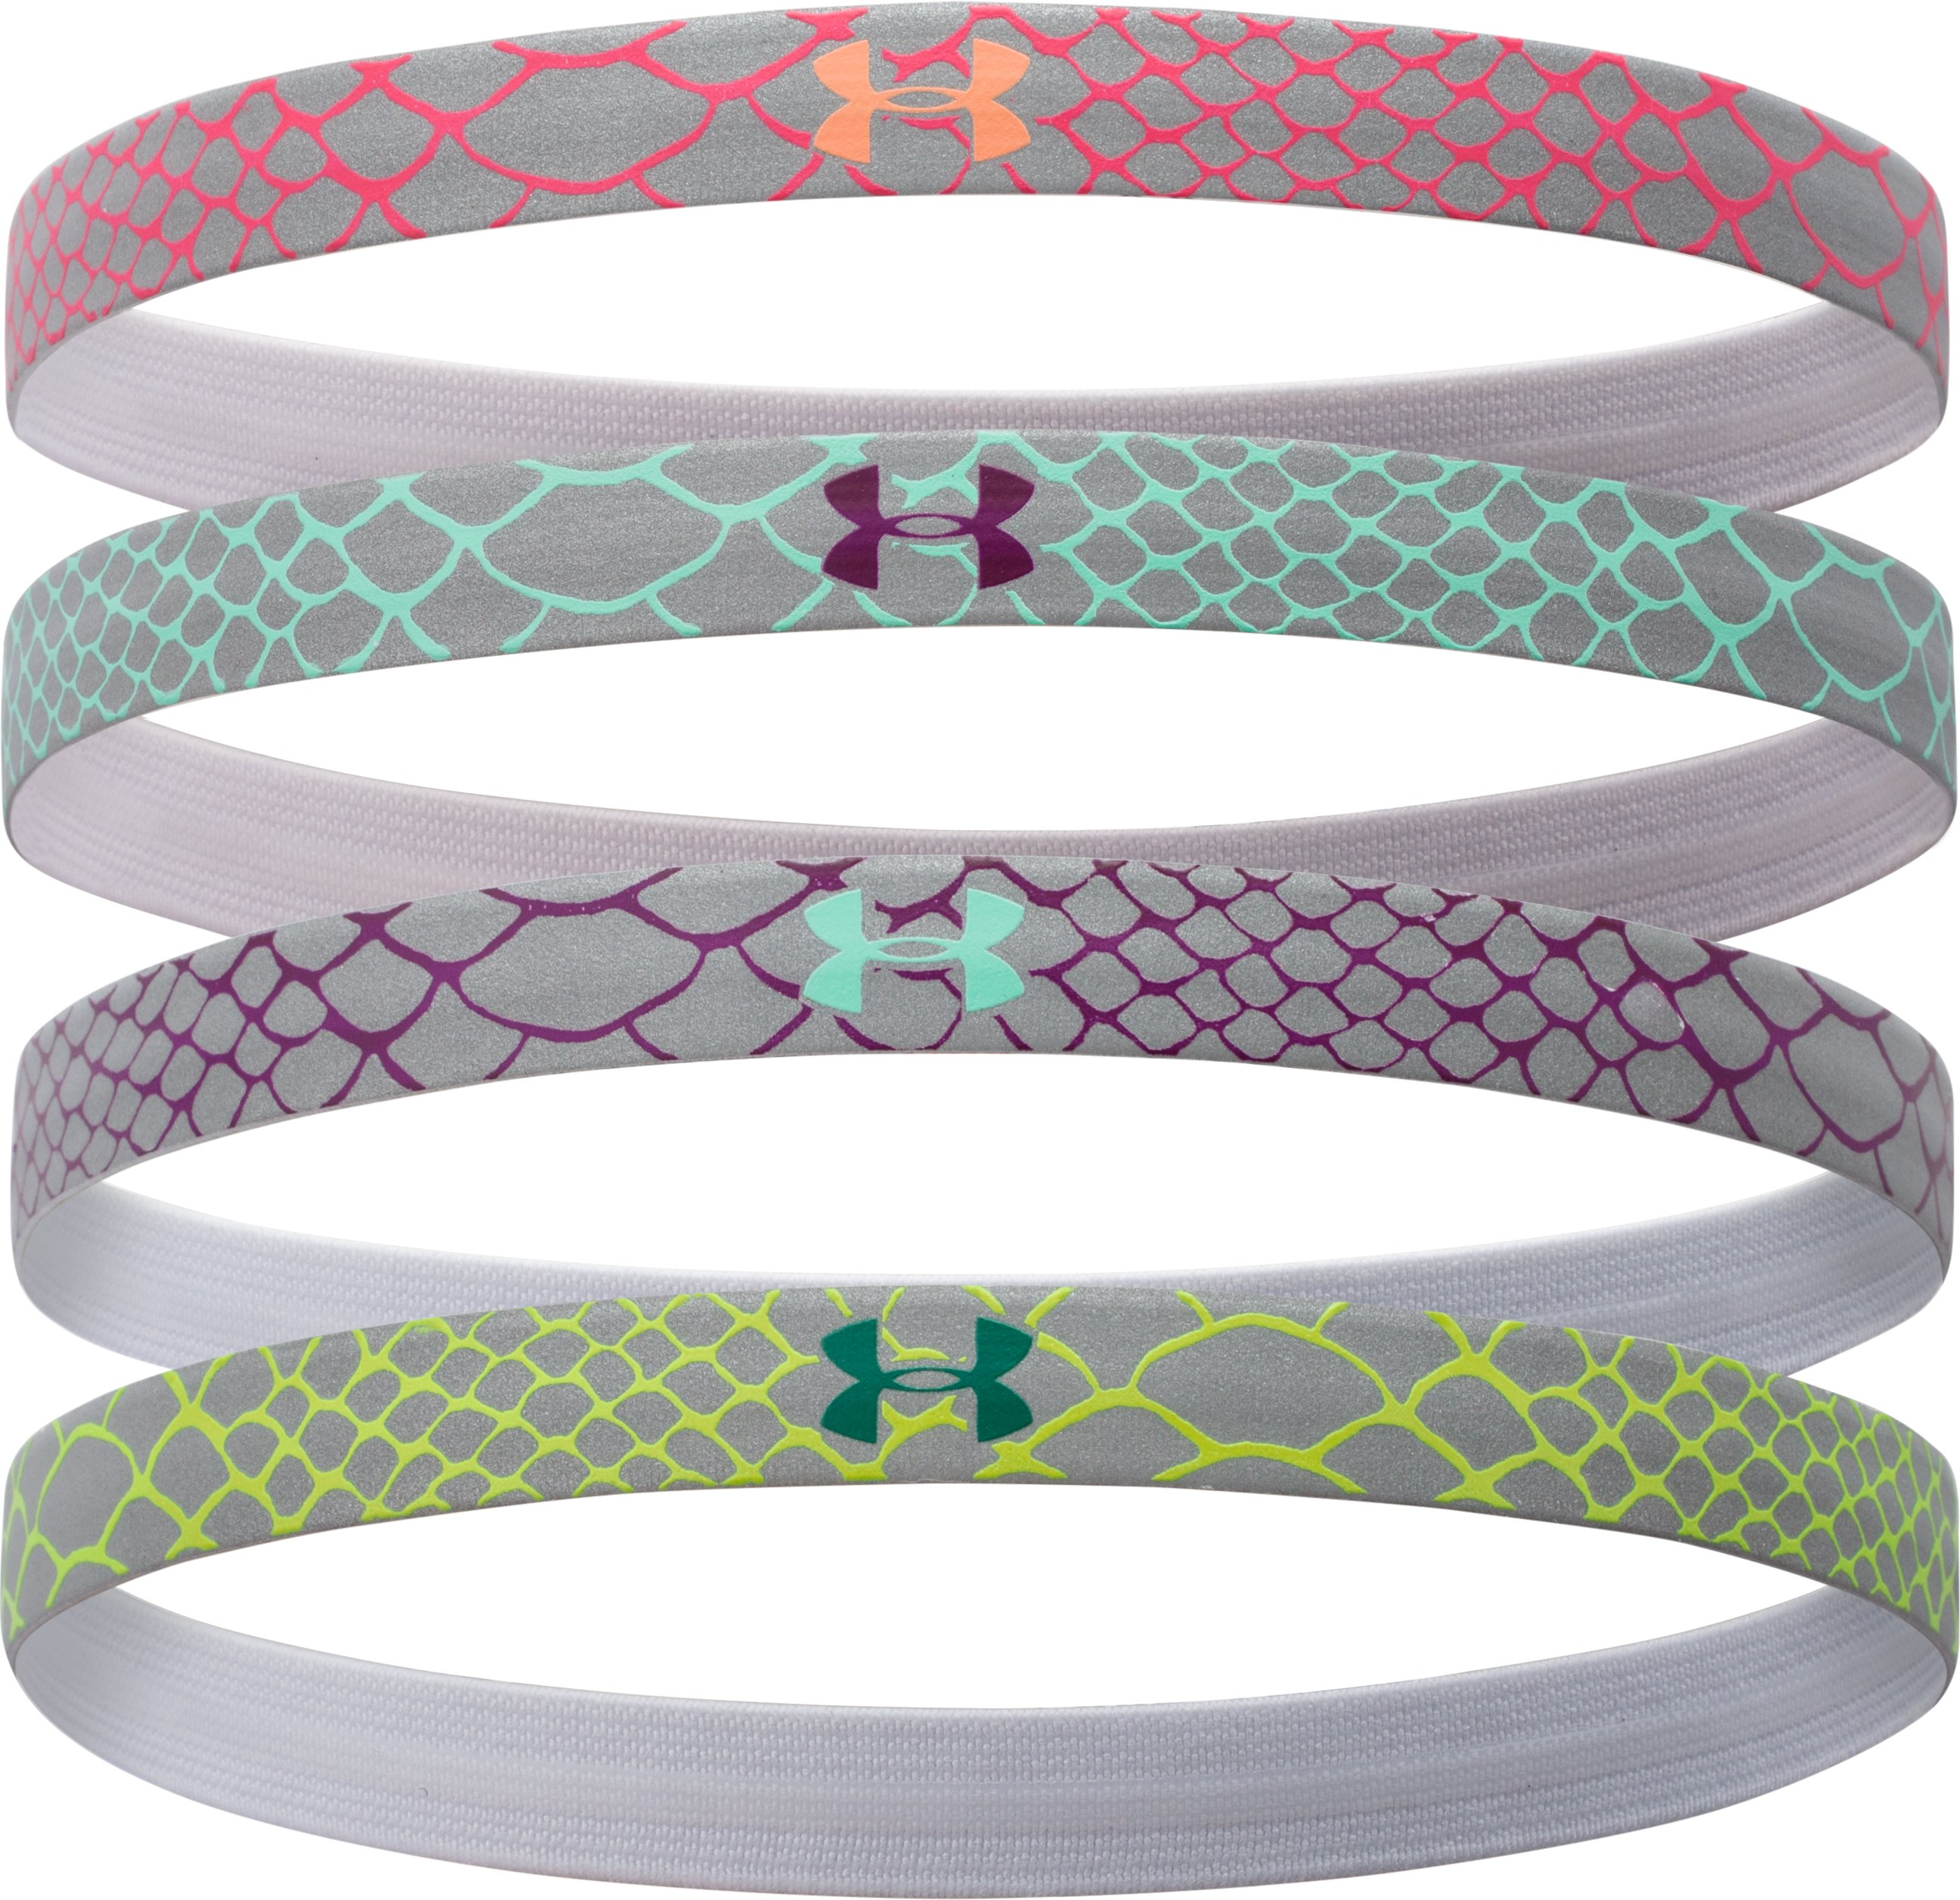 Women's UA Reflective Mini Headband - 4pk, Aubergine, undefined